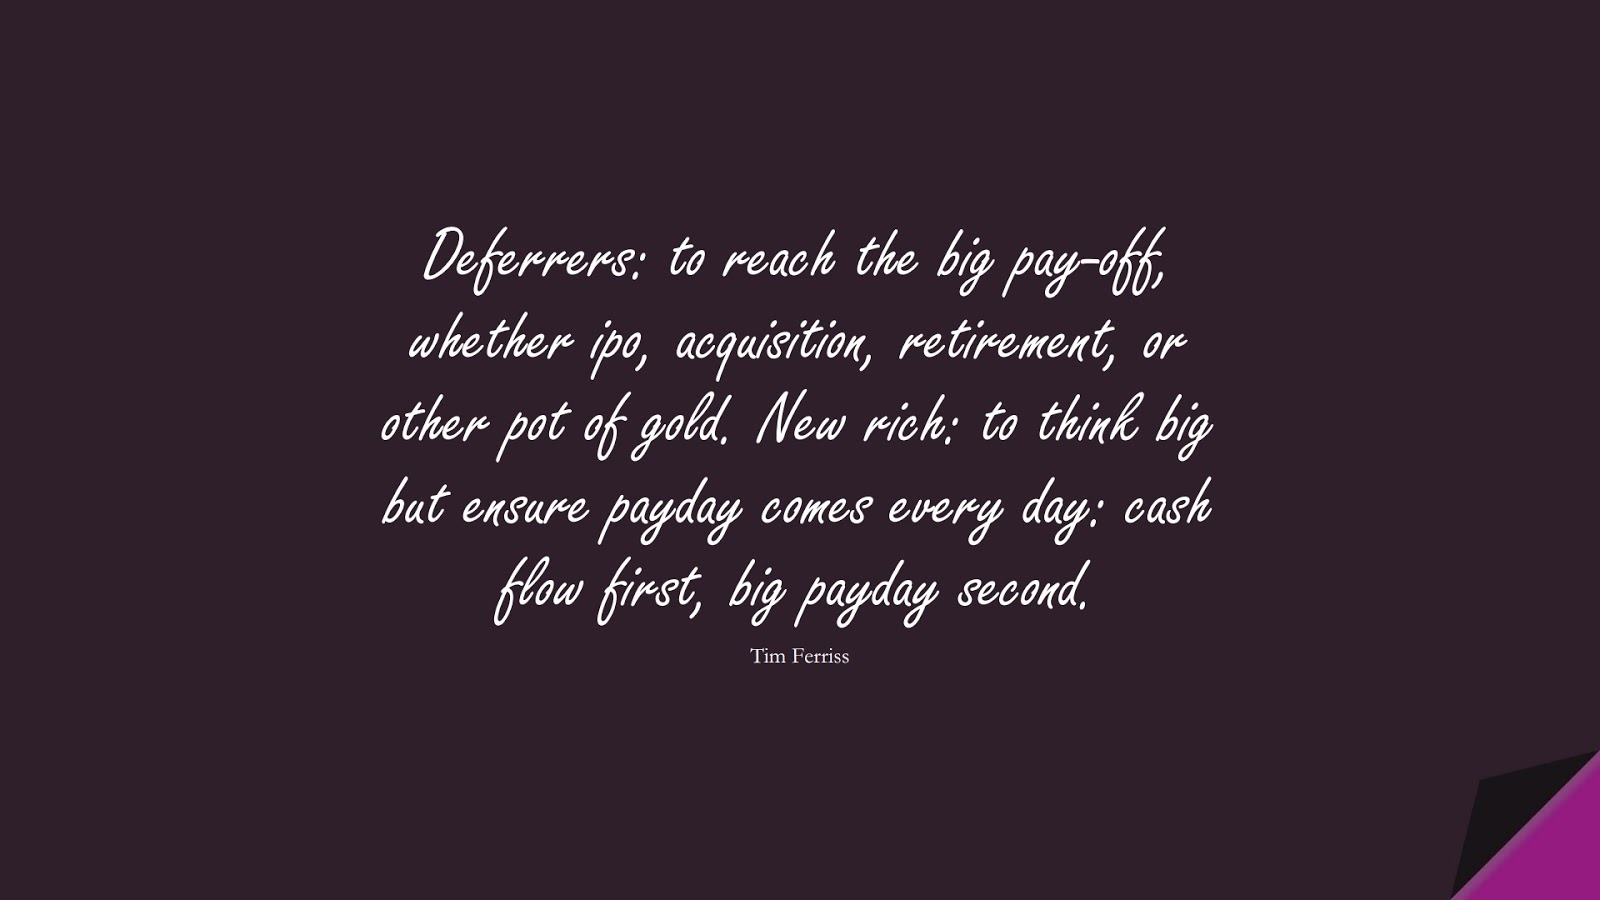 Deferrers: to reach the big pay-off, whether ipo, acquisition, retirement, or other pot of gold. New rich: to think big but ensure payday comes every day: cash flow first, big payday second. (Tim Ferriss);  #TimFerrissQuotes